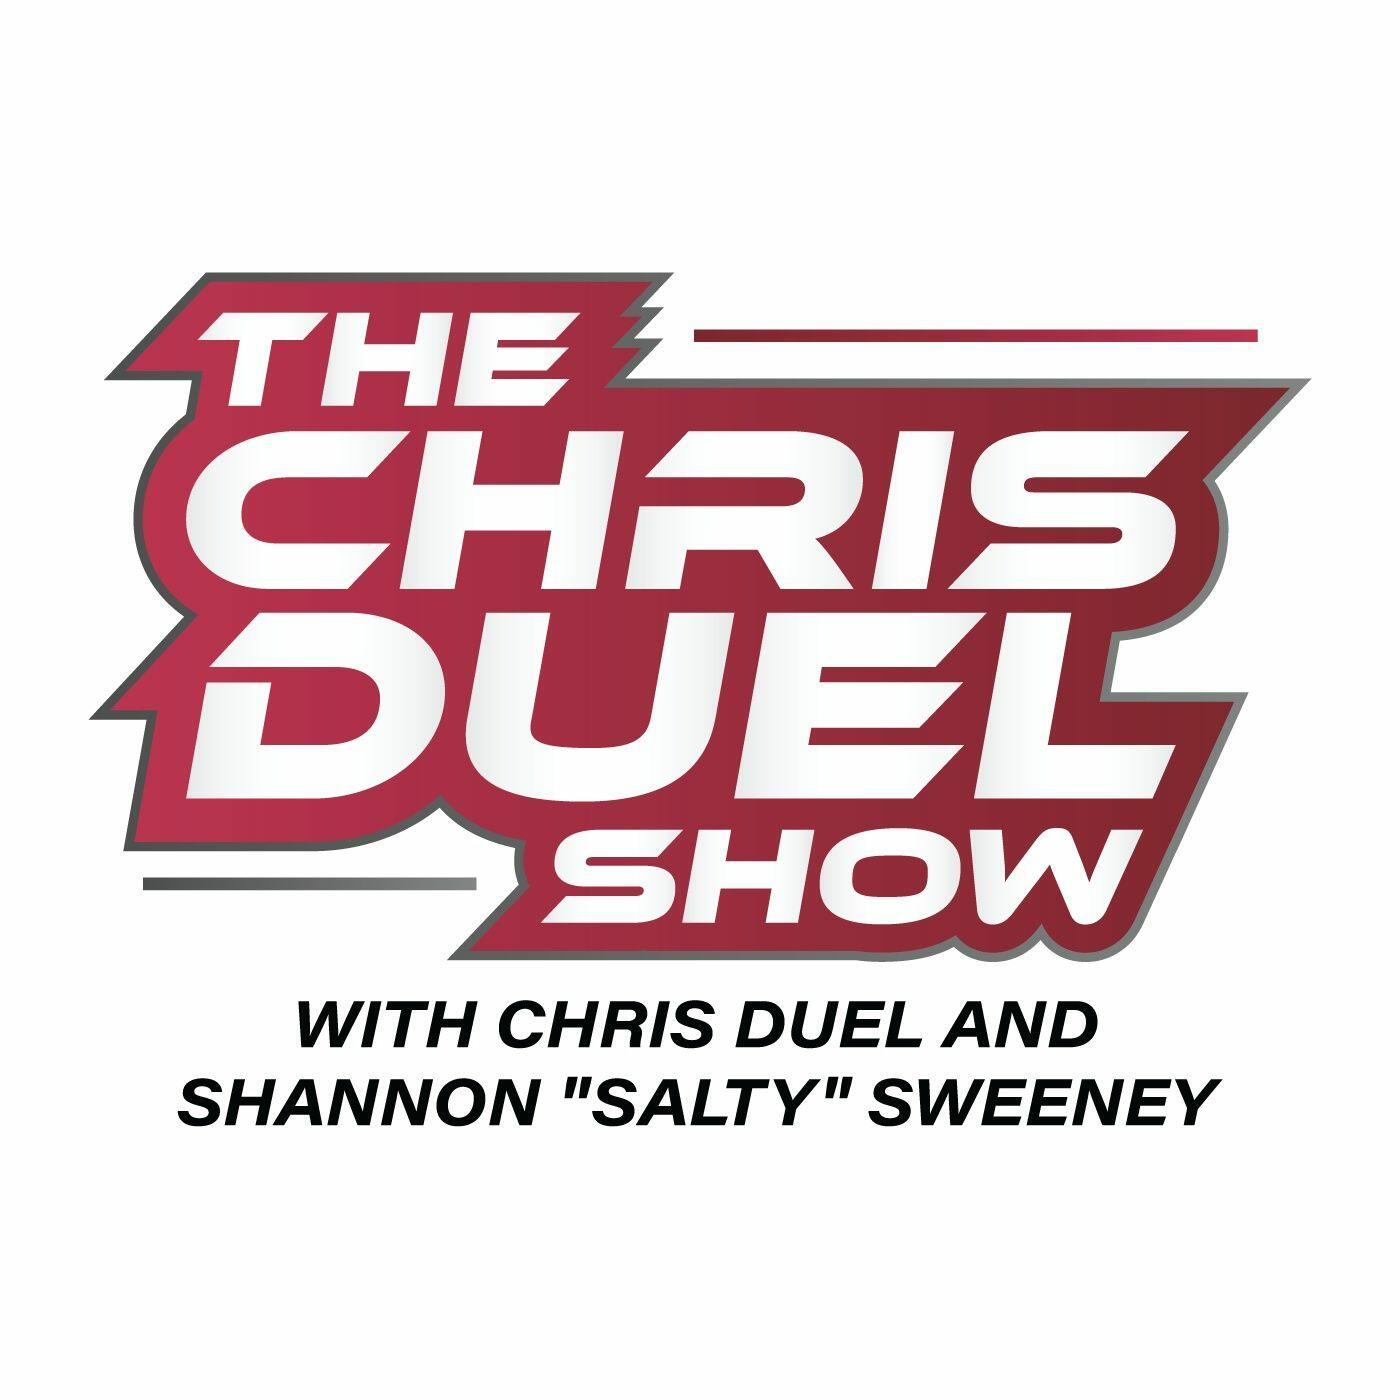 Listen to the The Chris Duel Show Episode - Andy Everett Hosts; Do you care about the XFL? Is 2nd Highest Paid RB enough for Zeke? on iHeartRadio | iHeartRadio